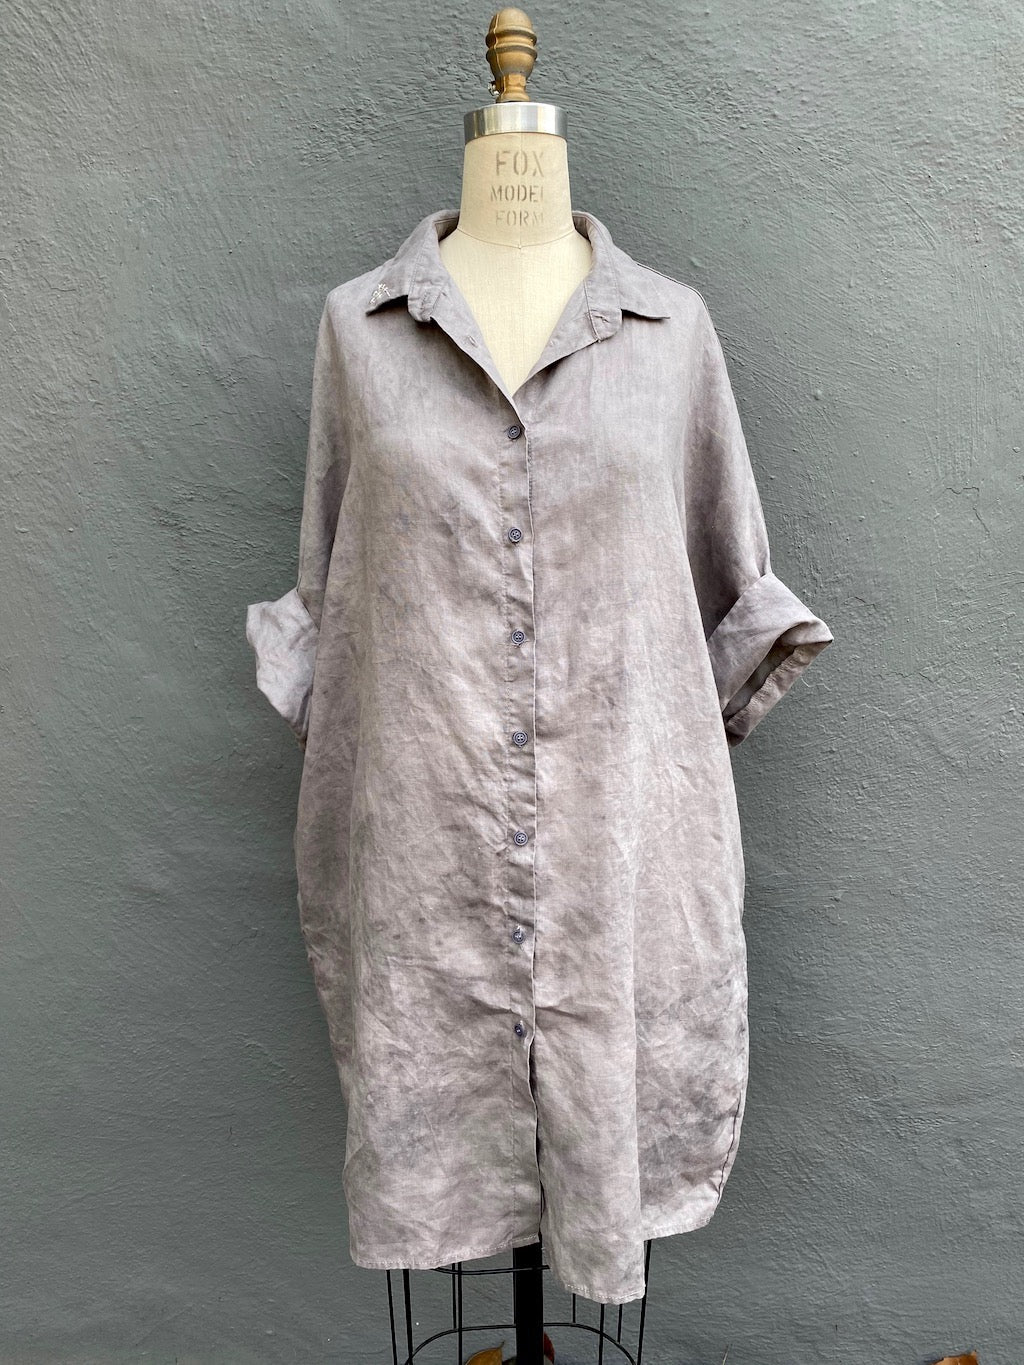 Grey | Organic Lightweight Cotton or Linen Smock Top with Pockets | For Women - Modern Shibori